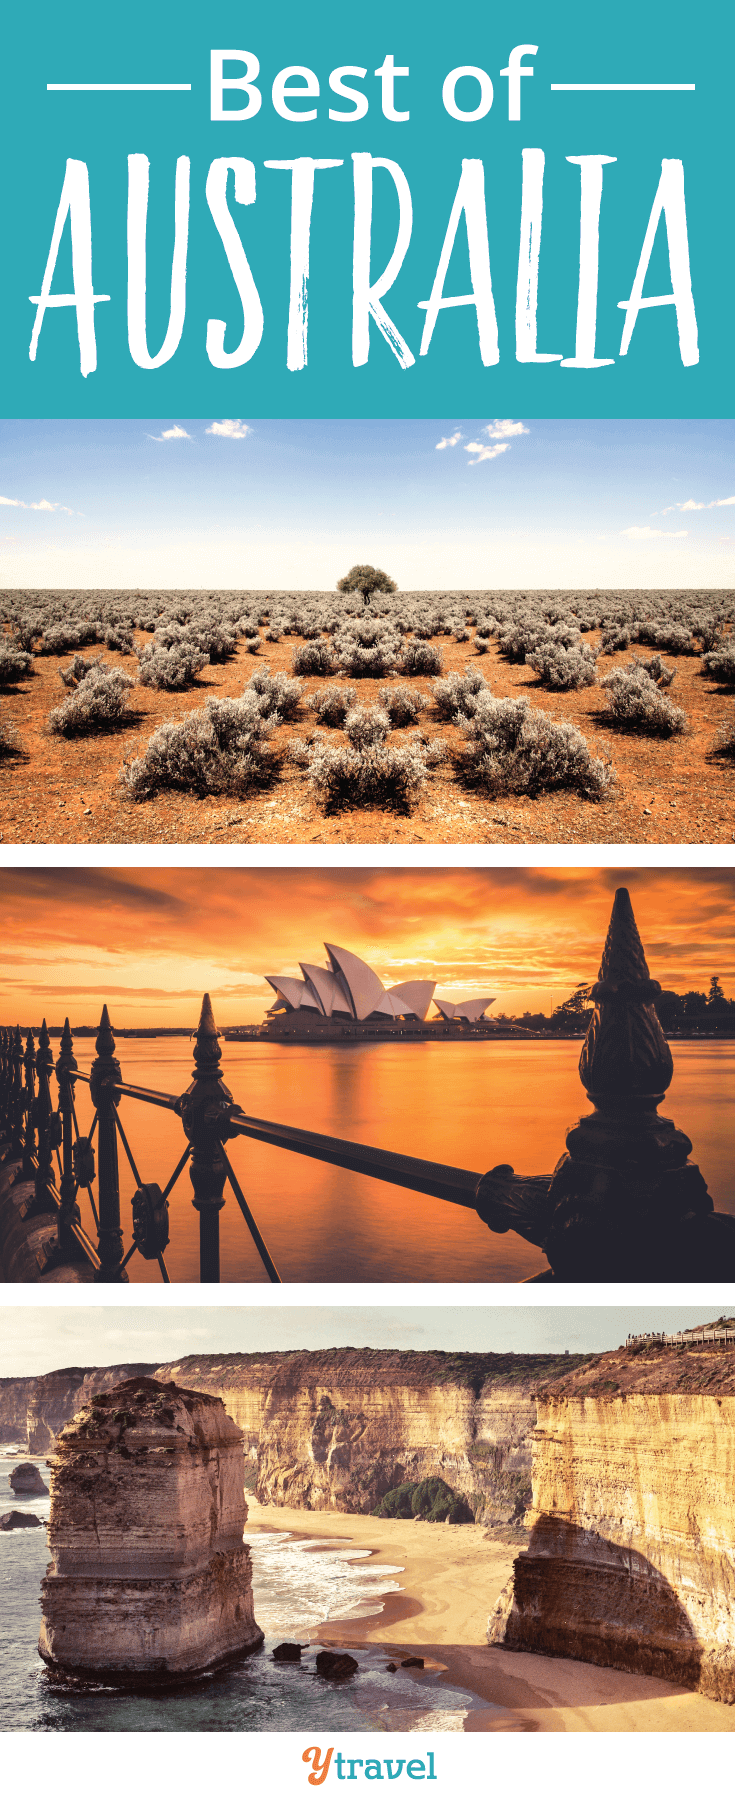 Thinking of traveling to Australia? Click inside to learn about the best beaches, islands, cities, National Parks, food and wine regions, and much more!